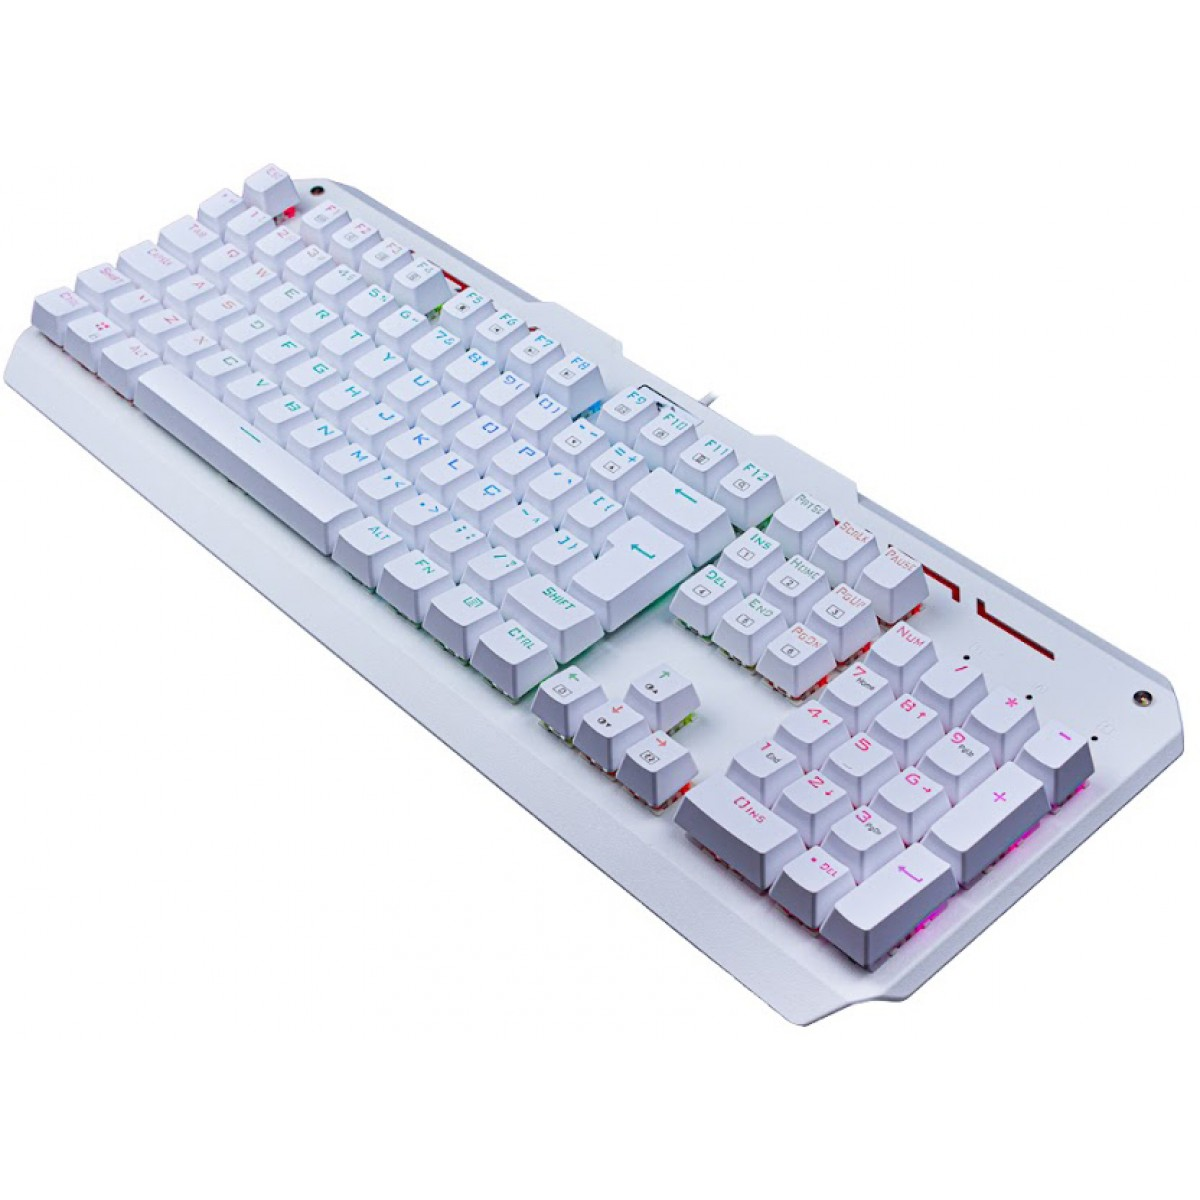 Teclado Mecânico Gamer Redragon Varuna Lunar K559W RGB, Switch Red, ABNT2, White